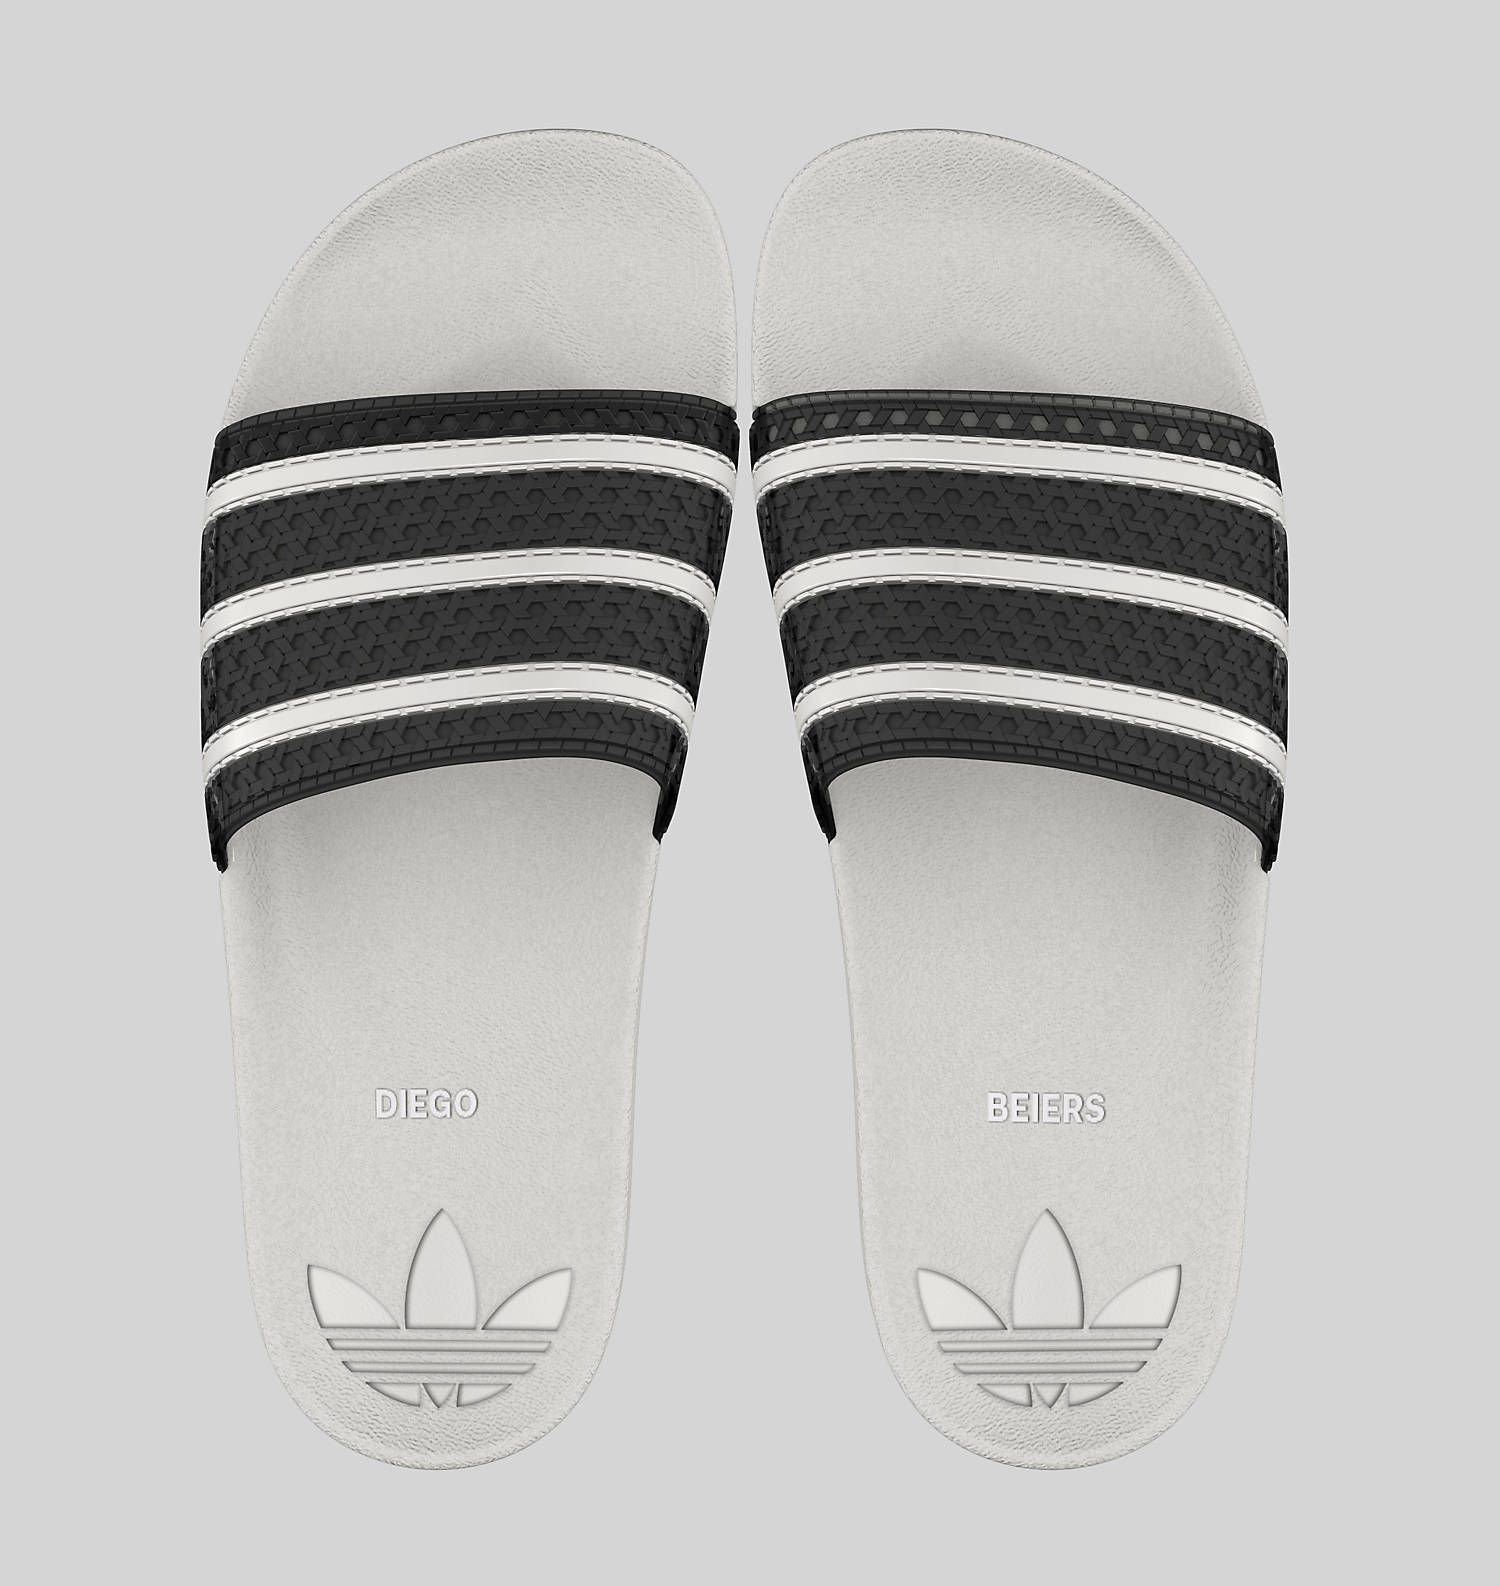 93d16c54a6b1d Adidas Adilette Athletic white and black striped custom slides